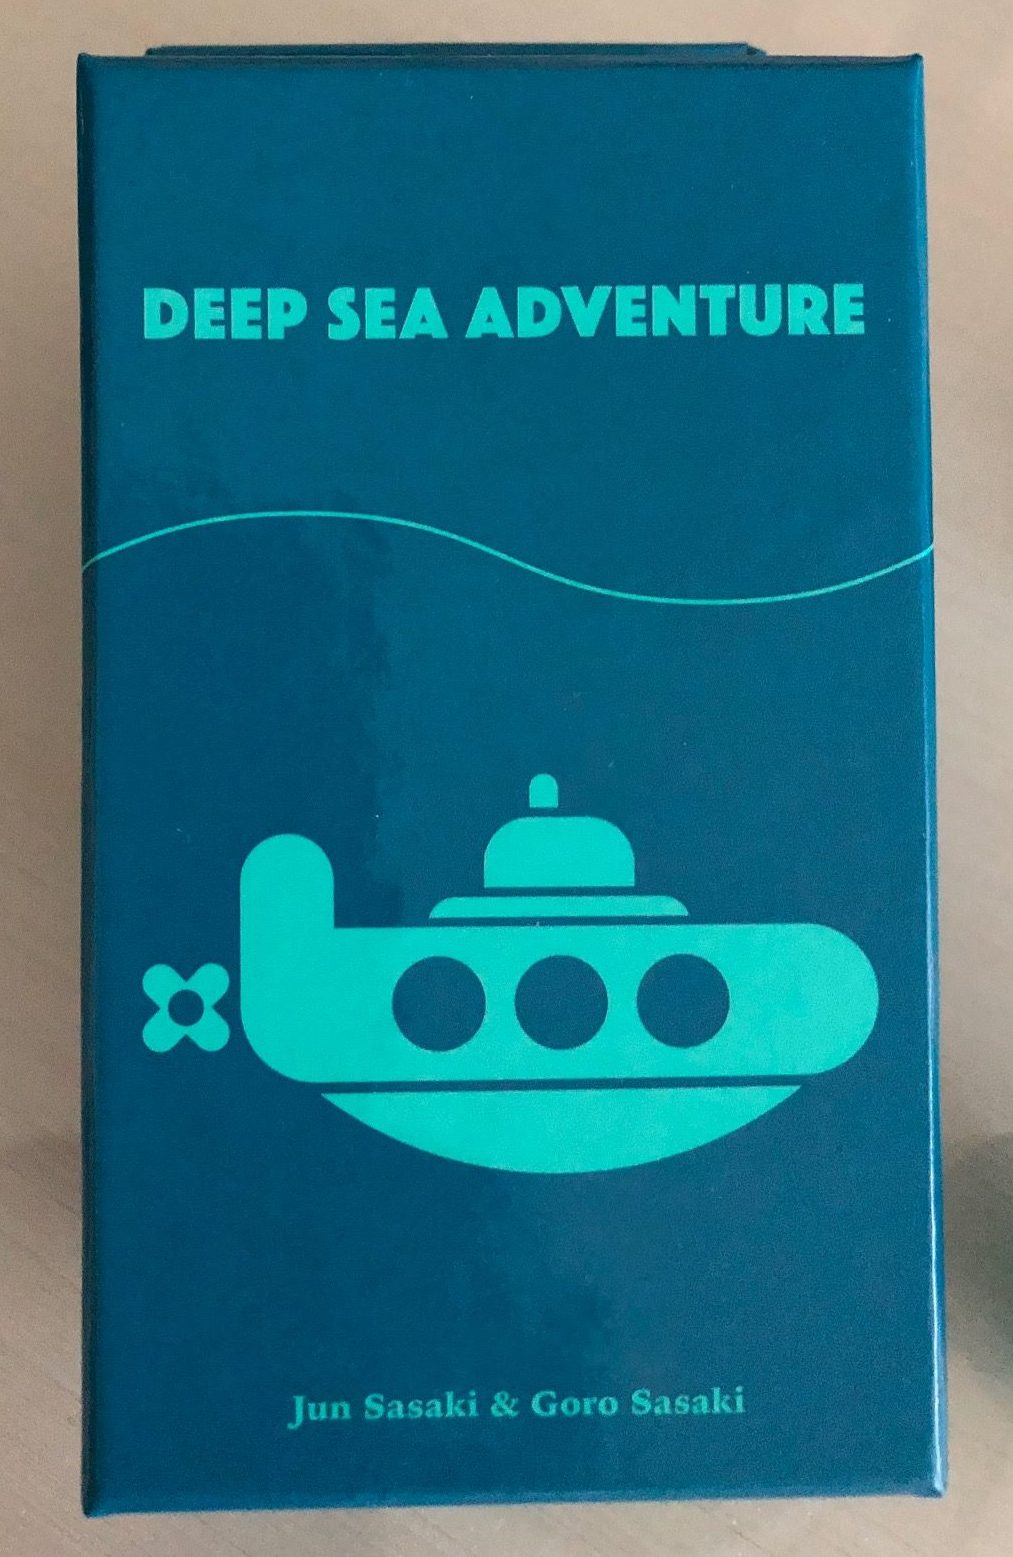 Deep-Sea-Adventure-e1521053036276